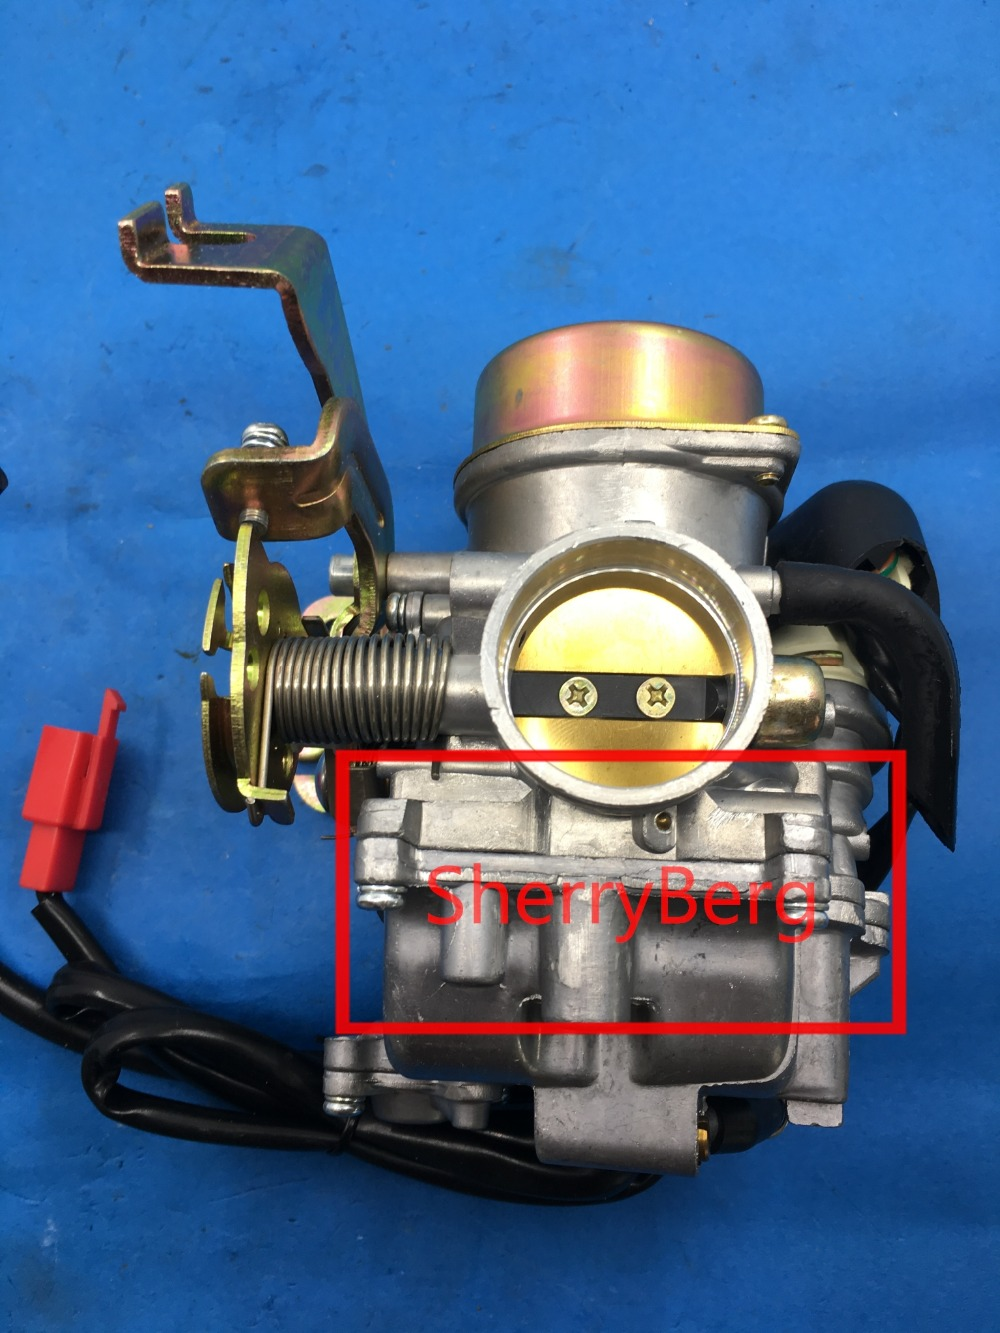 new 32mm Performance CVK32 Carburetor carb for 150cc 125cc 200cc 250cc 300cc 350cc GY6 atv for YAMAHA Honda ktm suzuki mikuni carburetor vm24 28mm round slide carburetor for 150cc 200cc 250cc atv quad buggy go kar carb free shipping